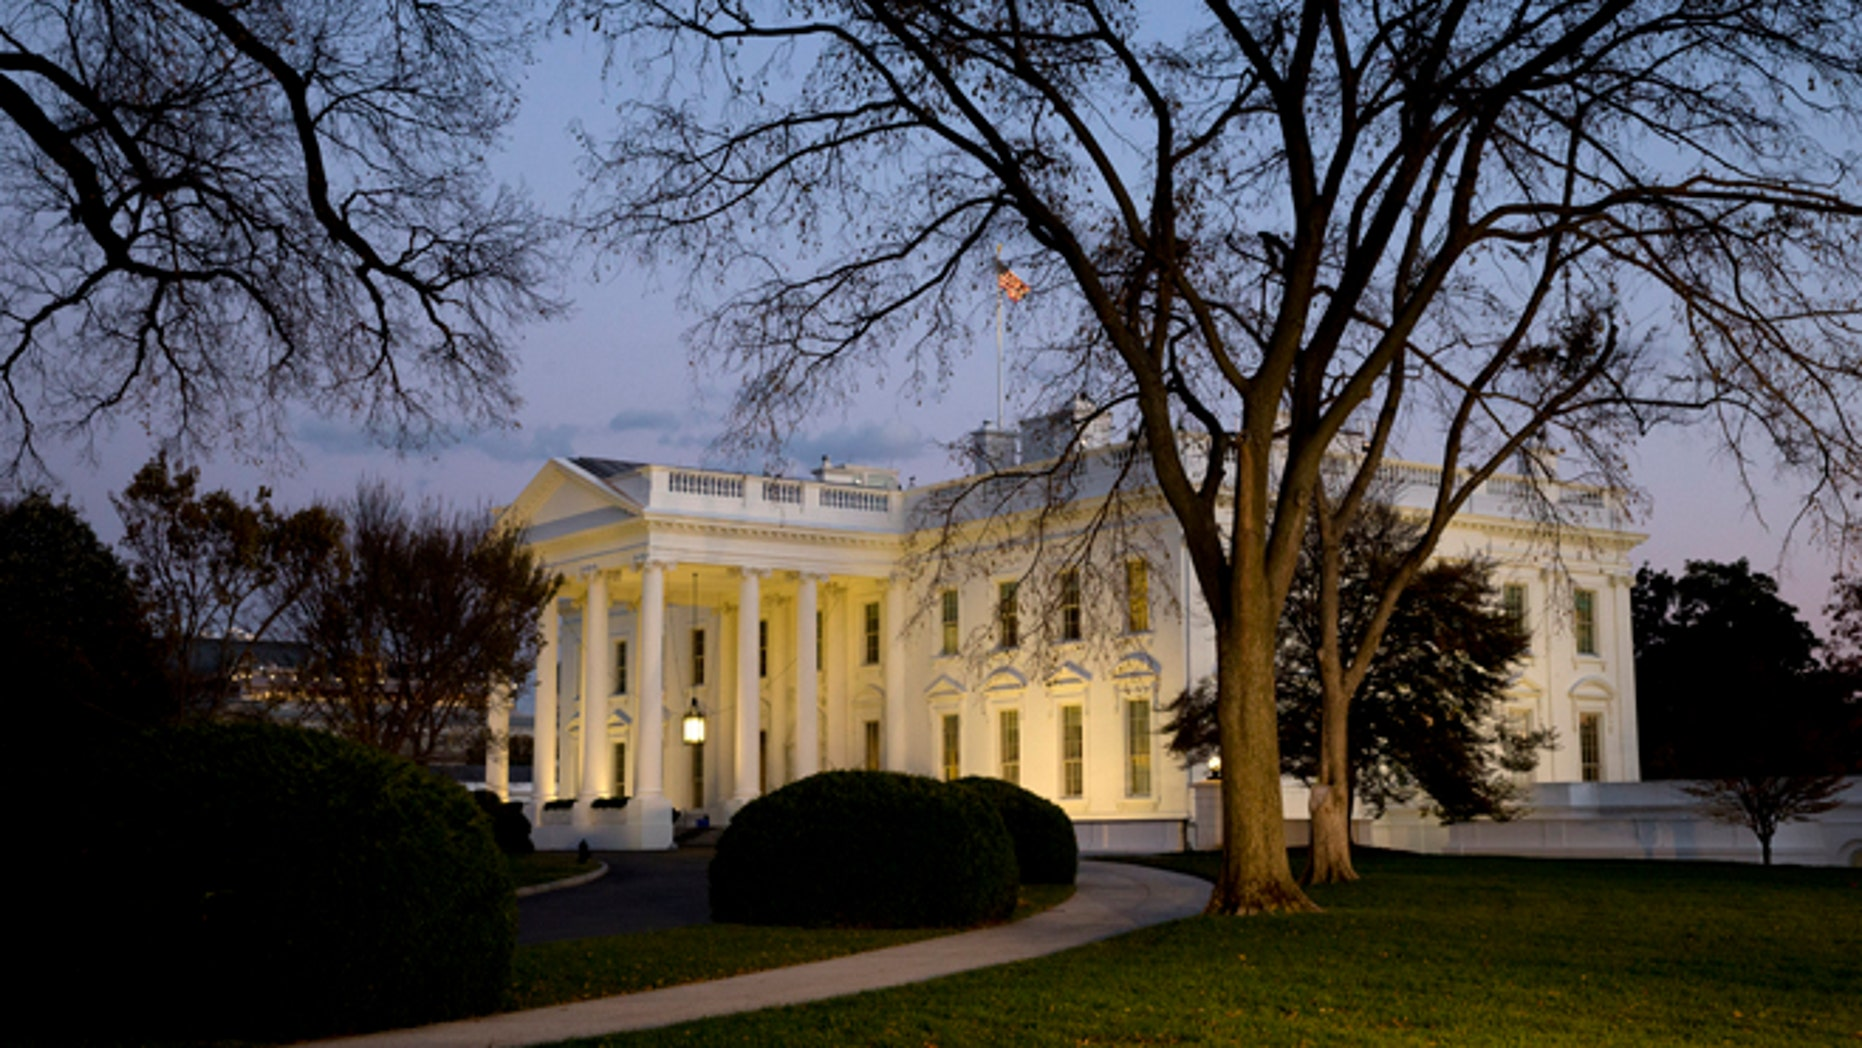 FILE - This Nov. 20, 2014, file photo shows the White House at sunset in Washington. After taking a shellacking in the November midterm elections, many Democrats remain confident that the 2016 presidential landscape still tilts in their favor. Republicans, meanwhile, are out to disprove the idea of an enduring âObama coalition.â (AP Photo/Jacquelyn Martin, File)